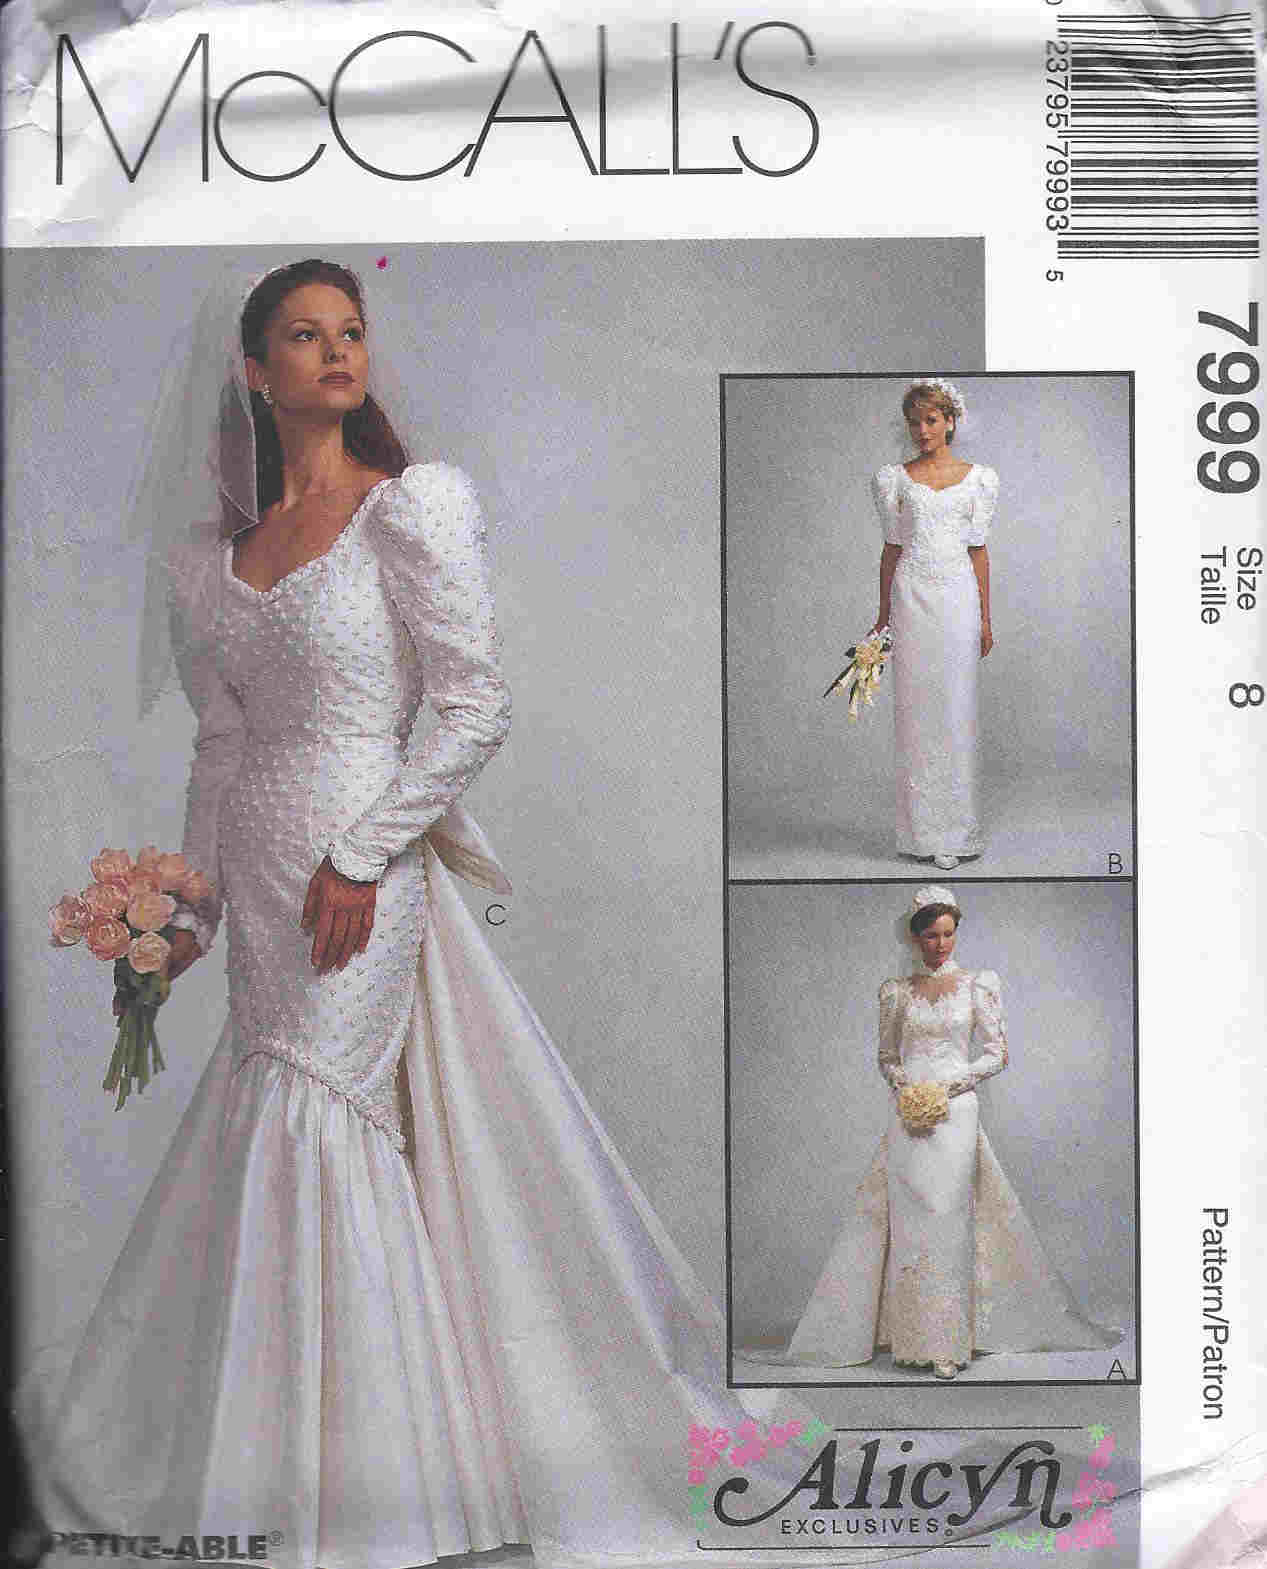 Alicyn Exclusives bridal gown sewing pattern